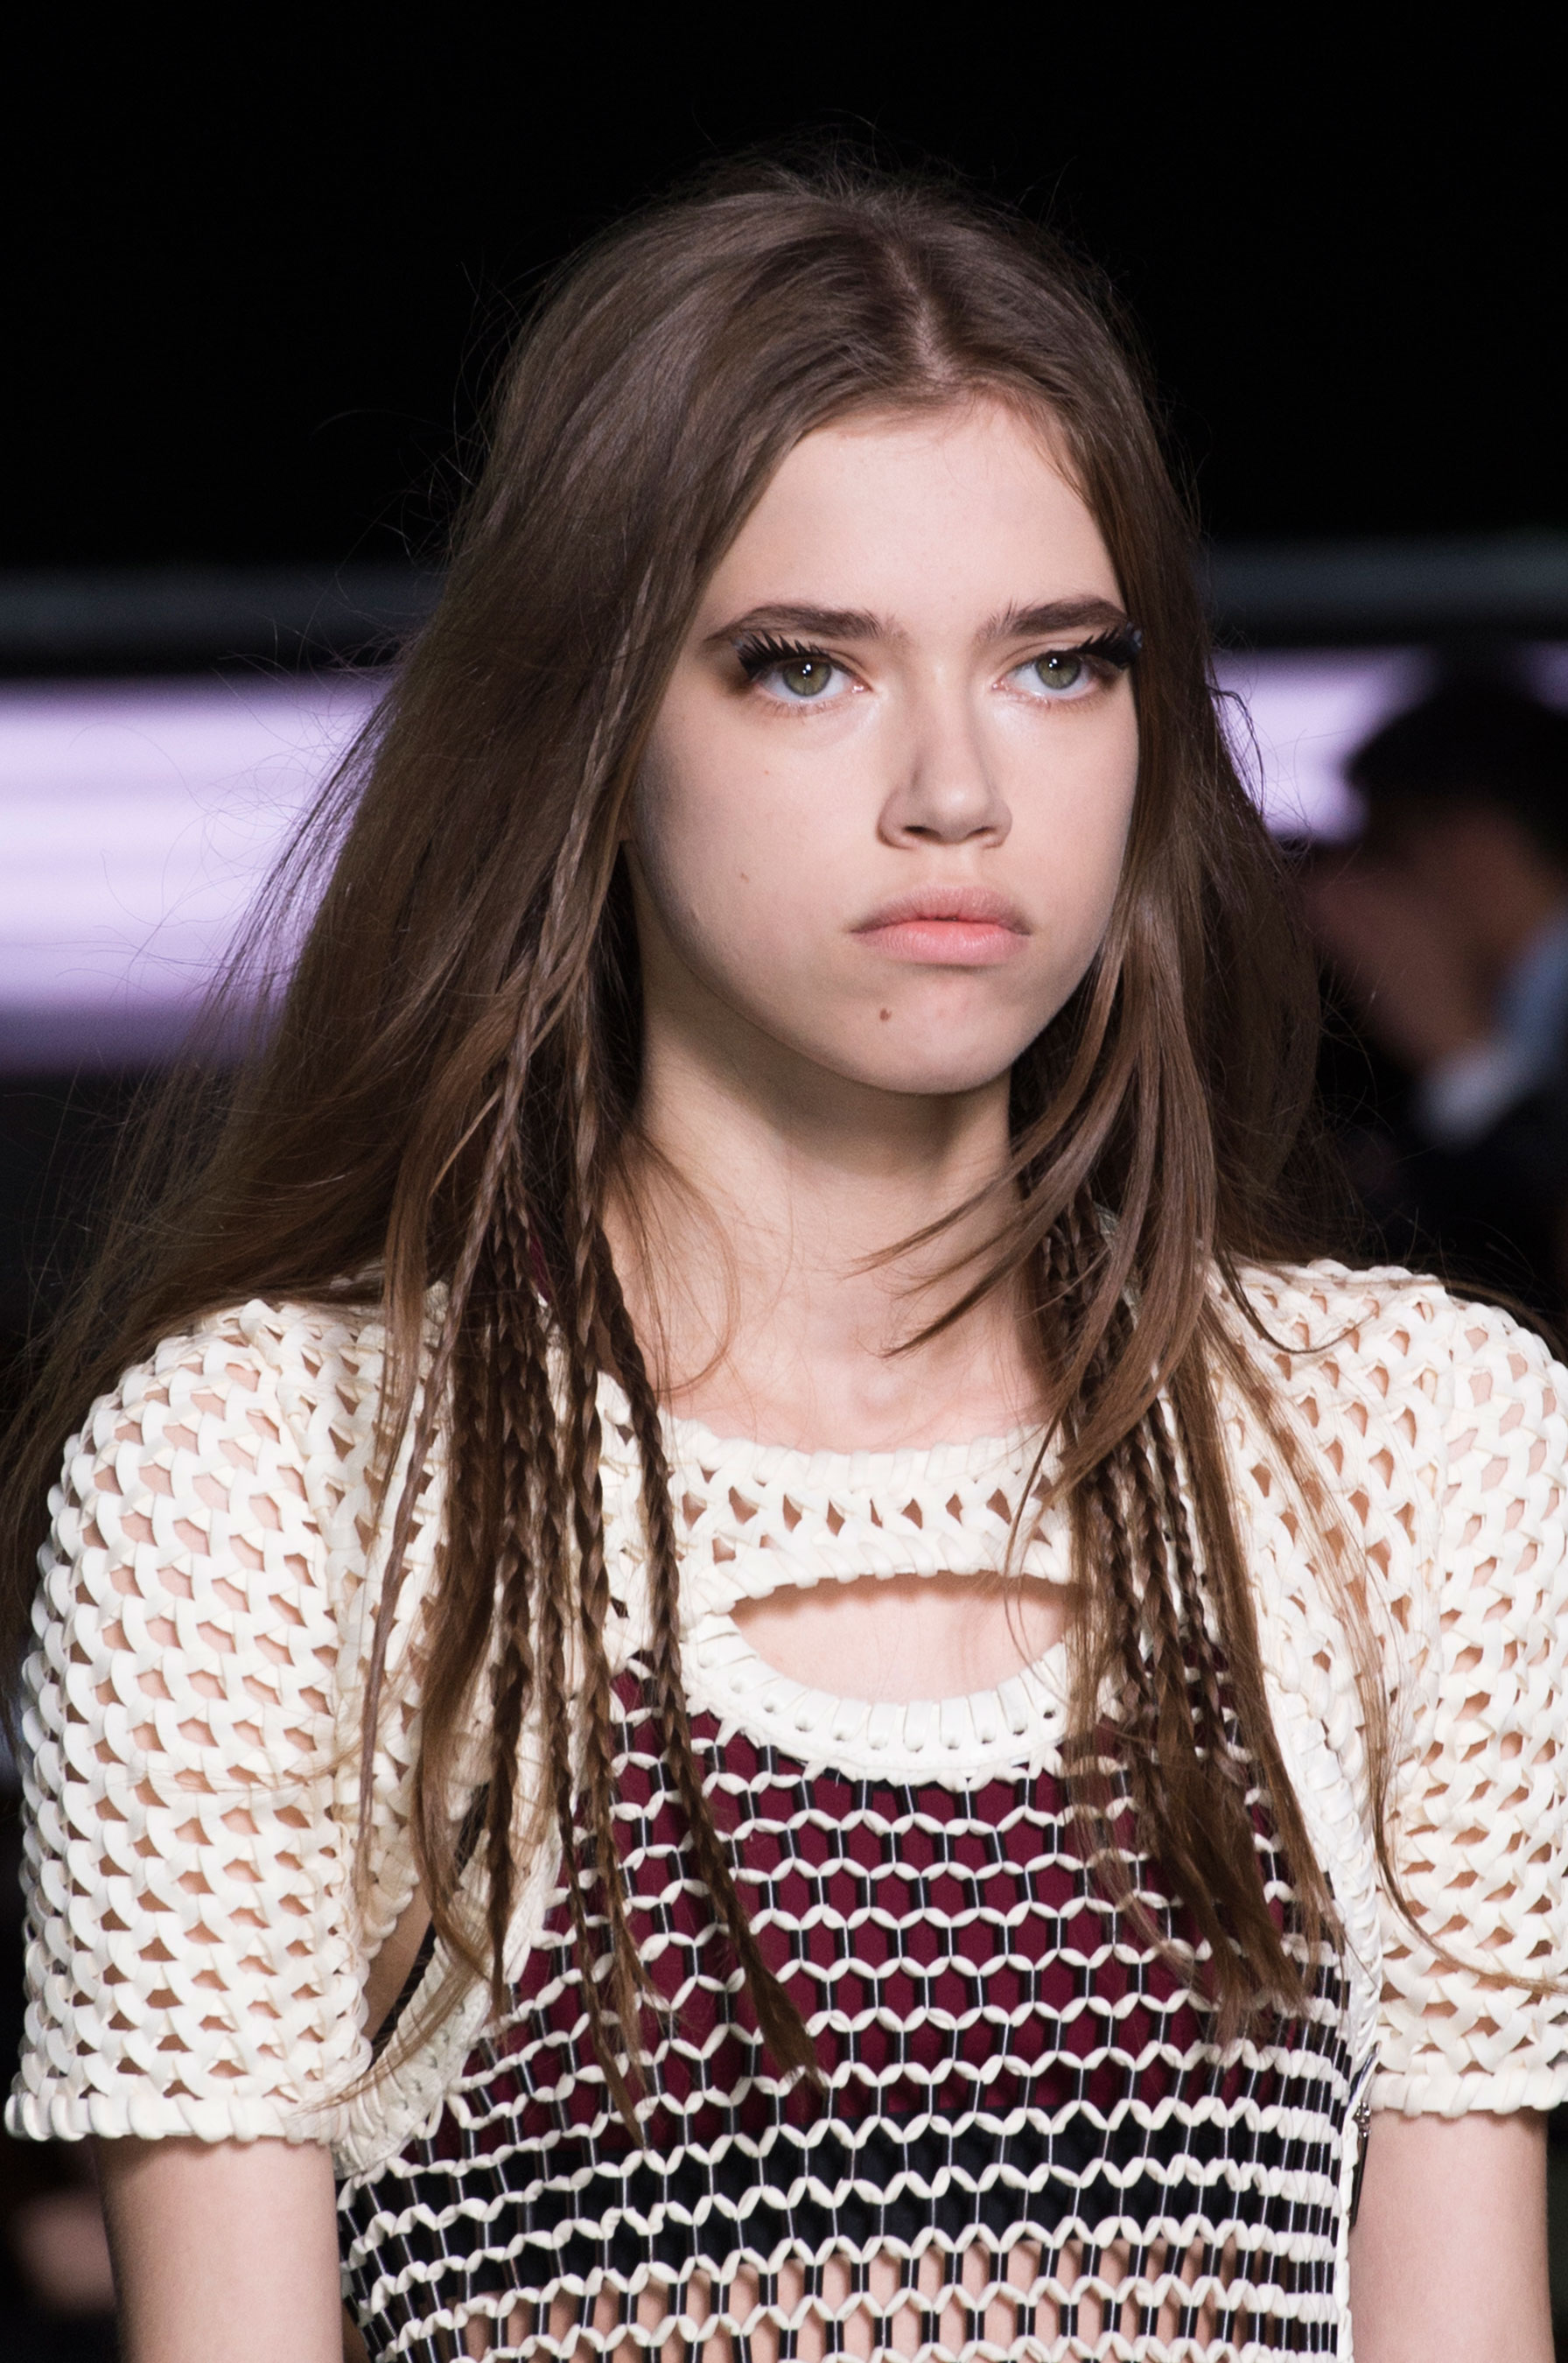 Louis-Vuitton-spring-2016-runway-beauty-fashion-show-the-impression-07